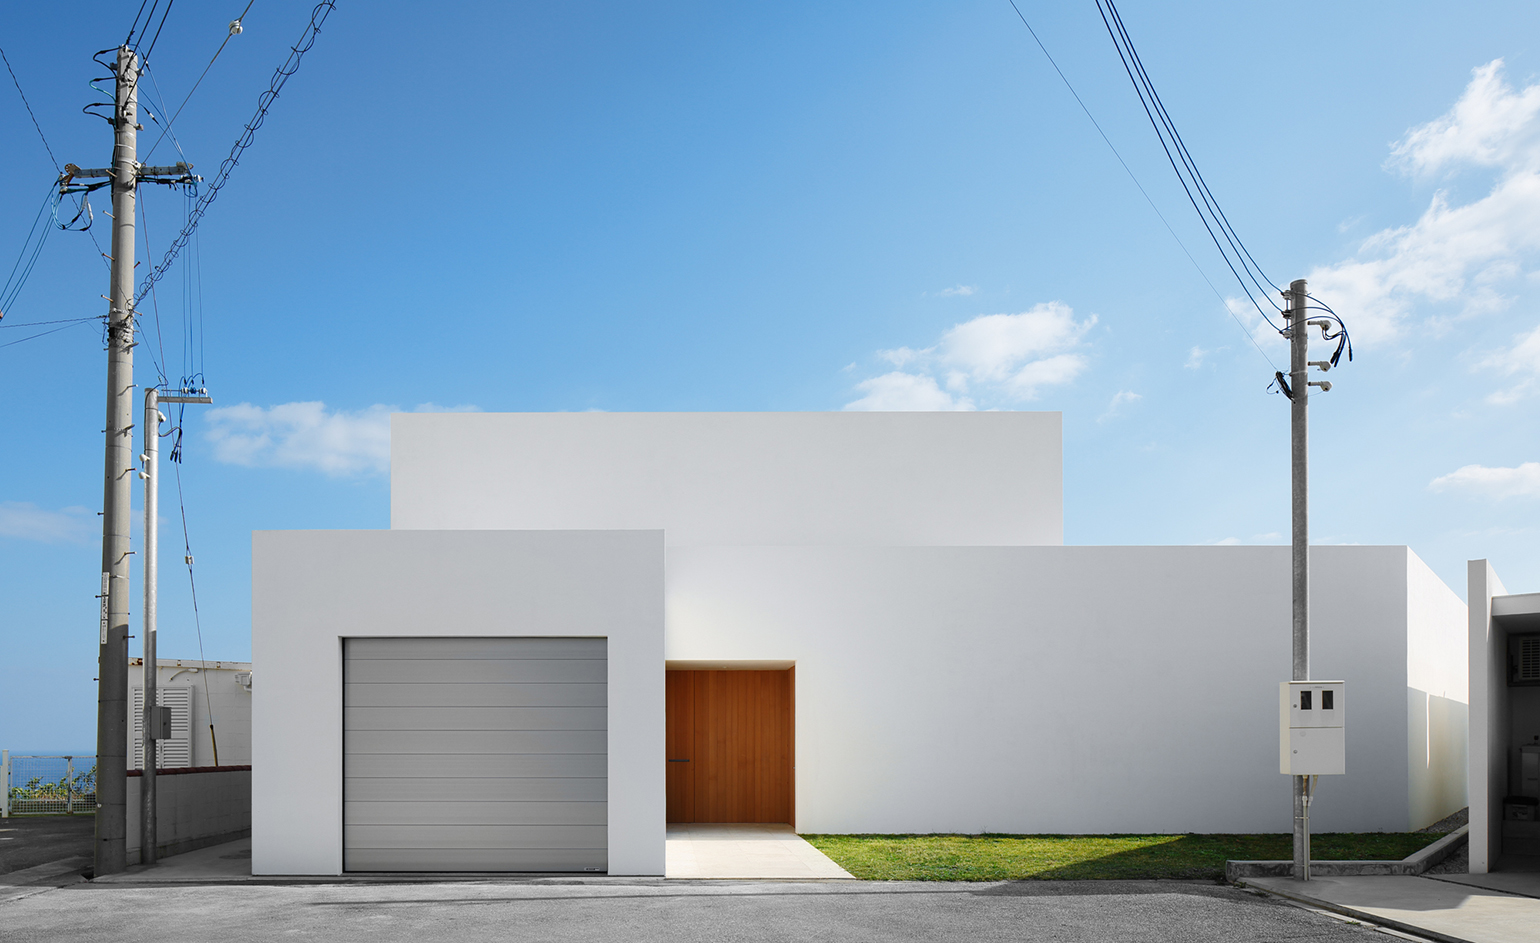 John pawson unveils minimalist japanese home in okinawa for Minimalist ideas for your home